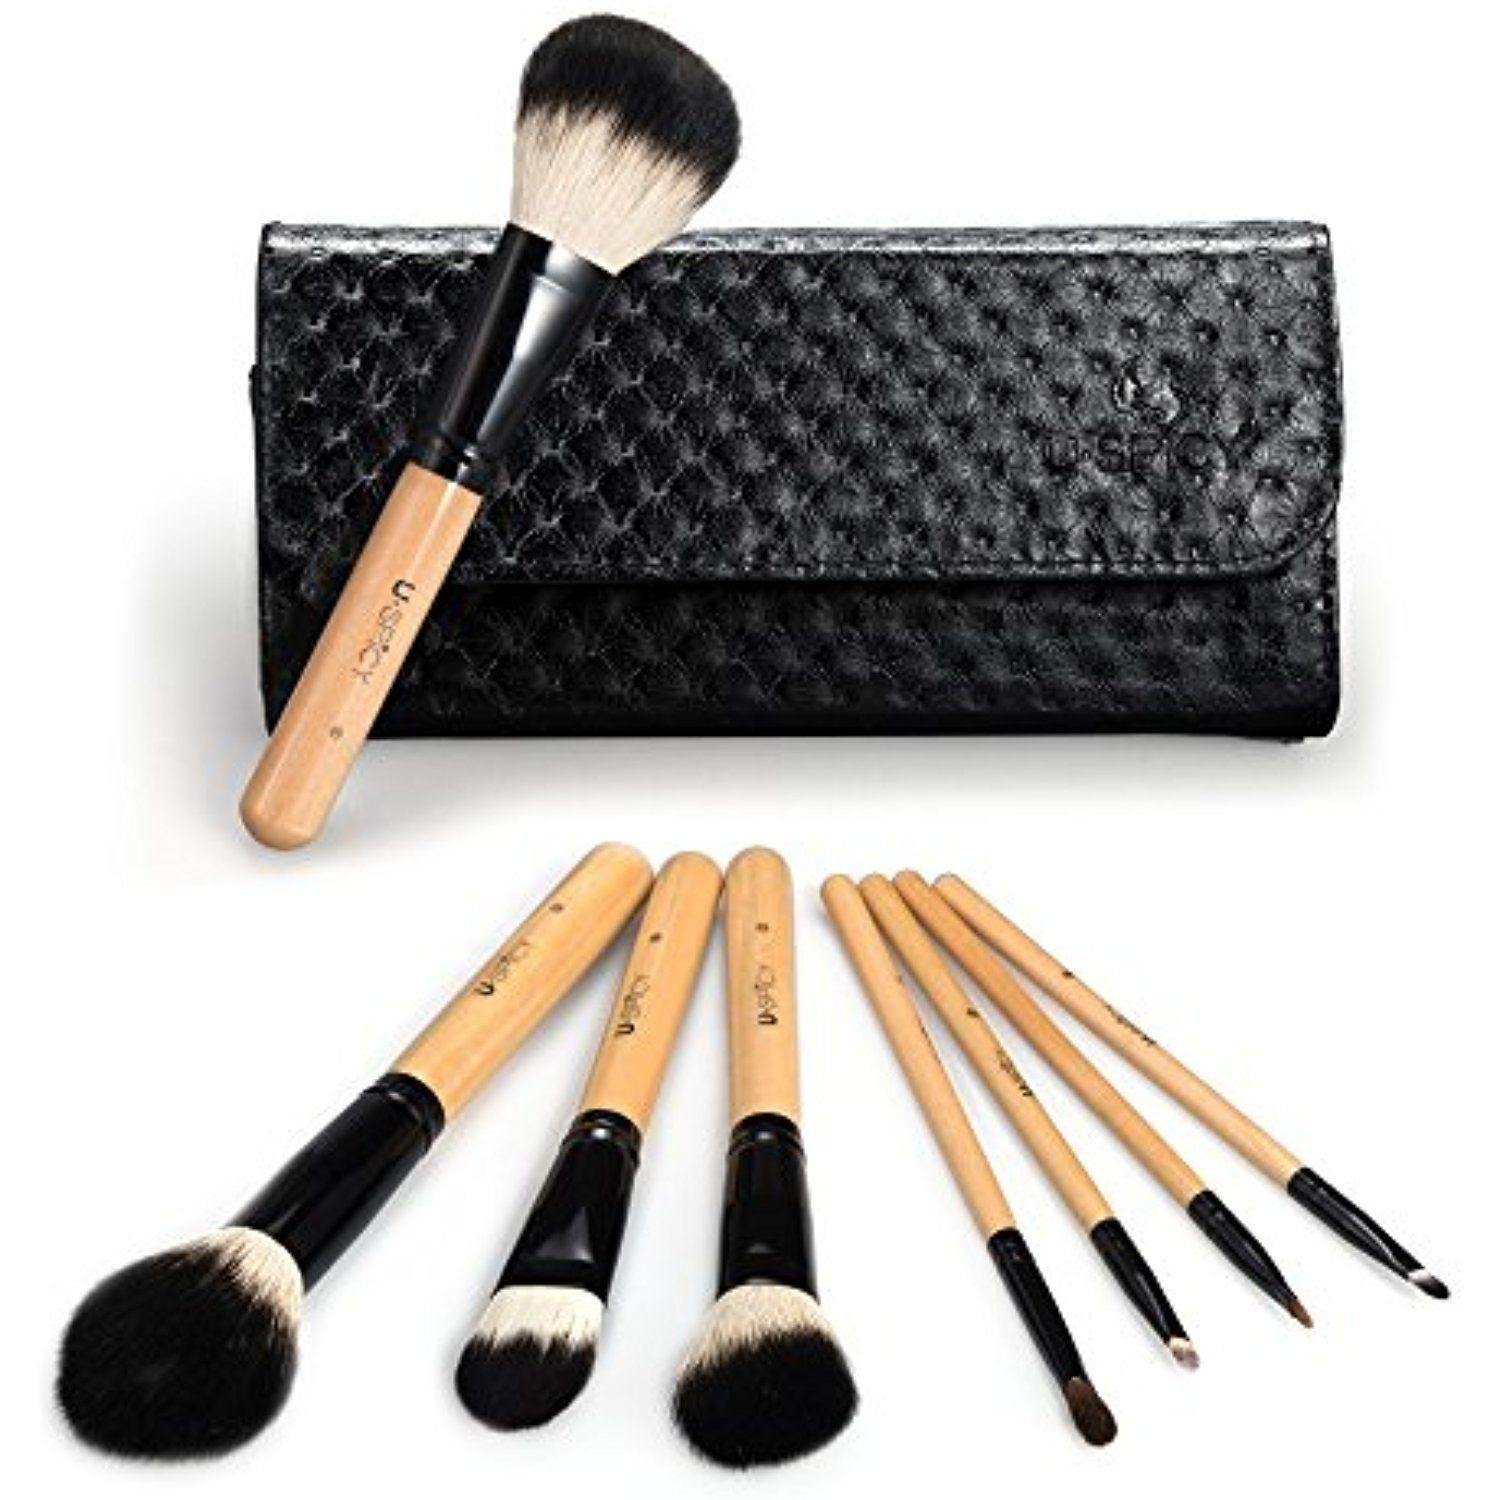 USpicy 8 Pieces Makeup Brushes Wooden Handle Make Up Brush